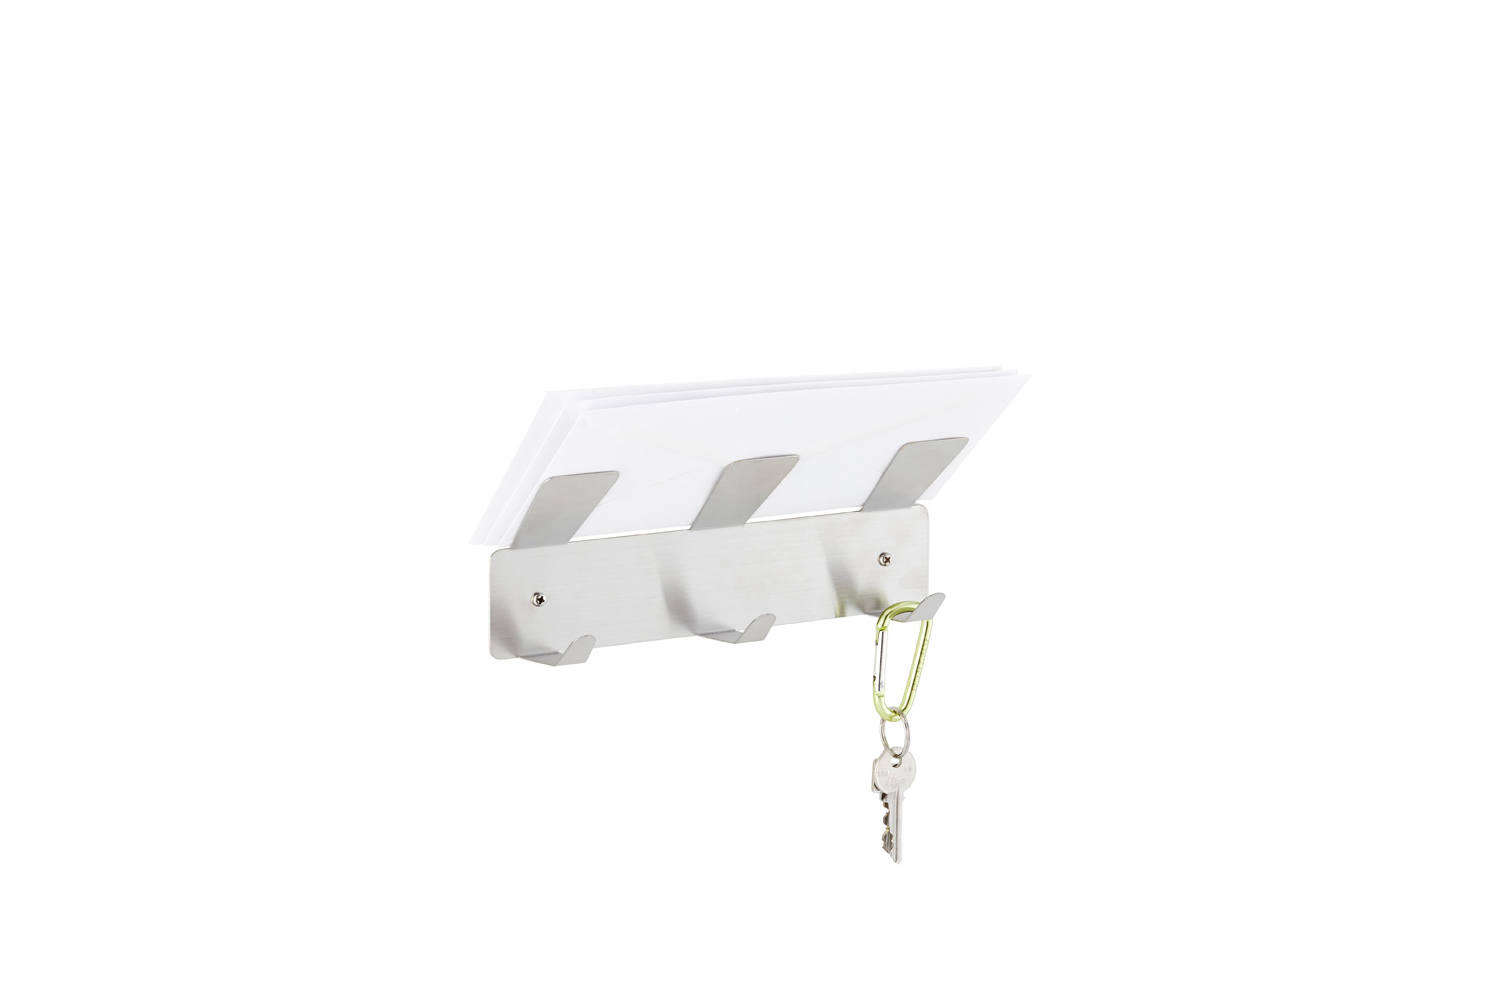 Three by Three Stainless Hook Up Wall Hooks